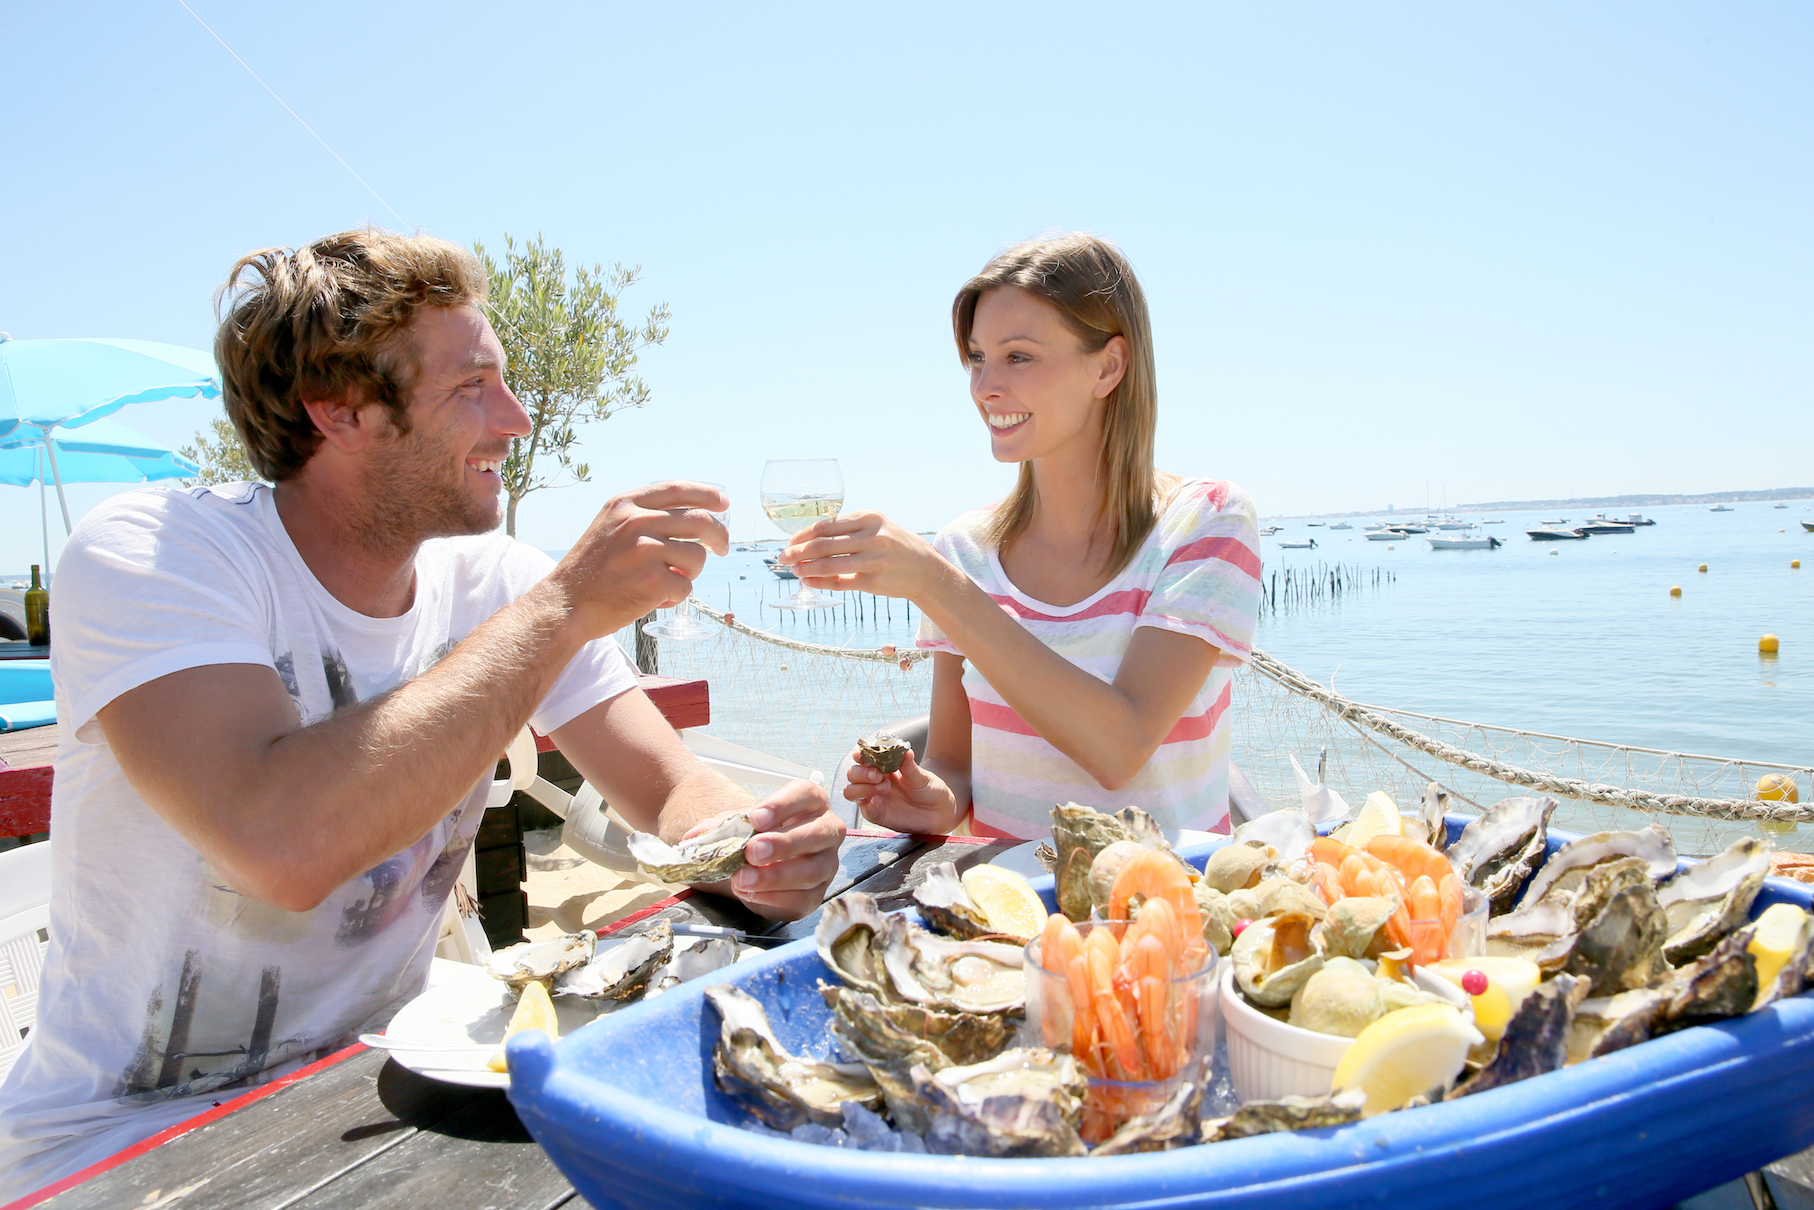 Researchers have found that couples who eat at least two servings of seafood each week are more sexually active and succeed in getting pregnant faster.